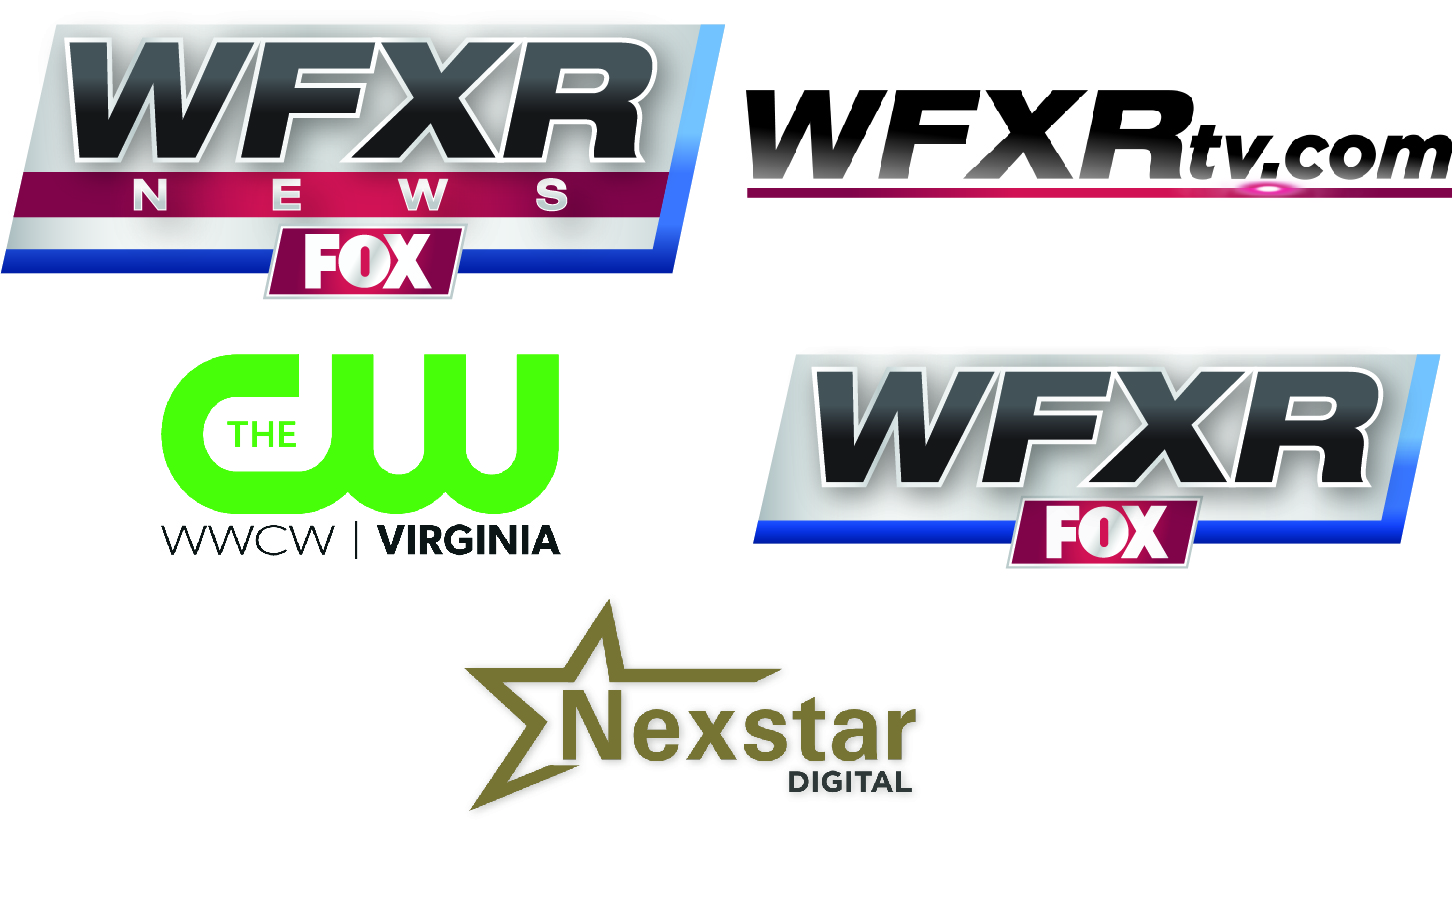 WFXR News, WFXR TV, WWCW TV and Nexstar Digital